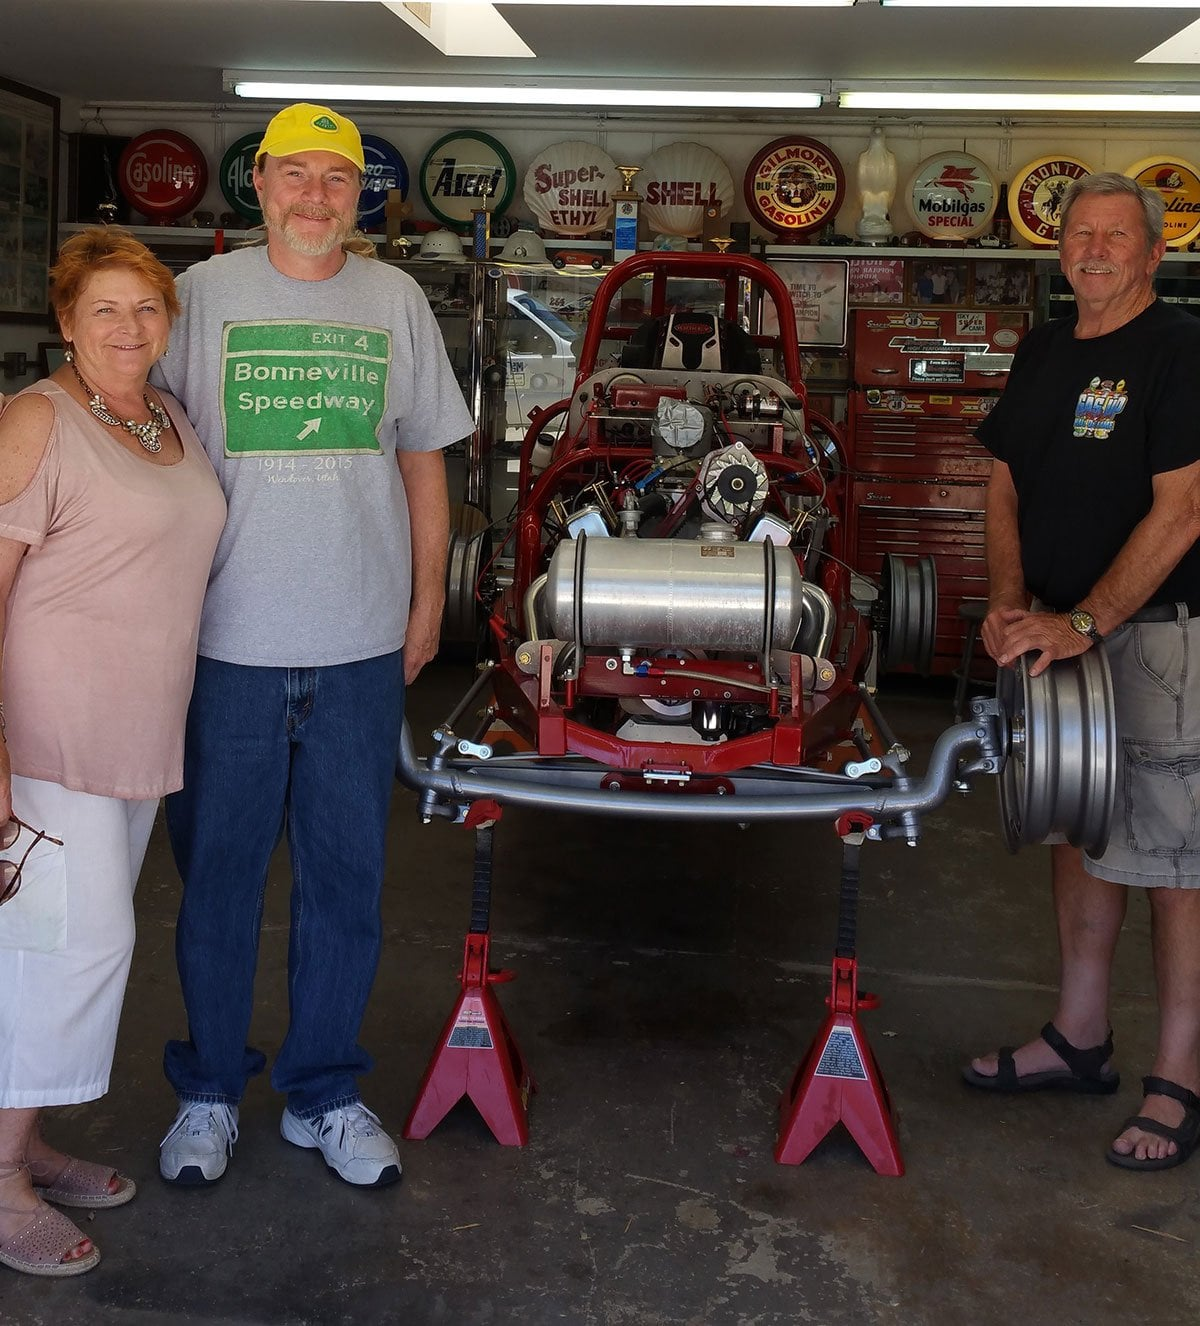 VICKY-&-MARK-MENDENHALL-DRY-LAKES-RACING-HALL-OF-FAME-06-17